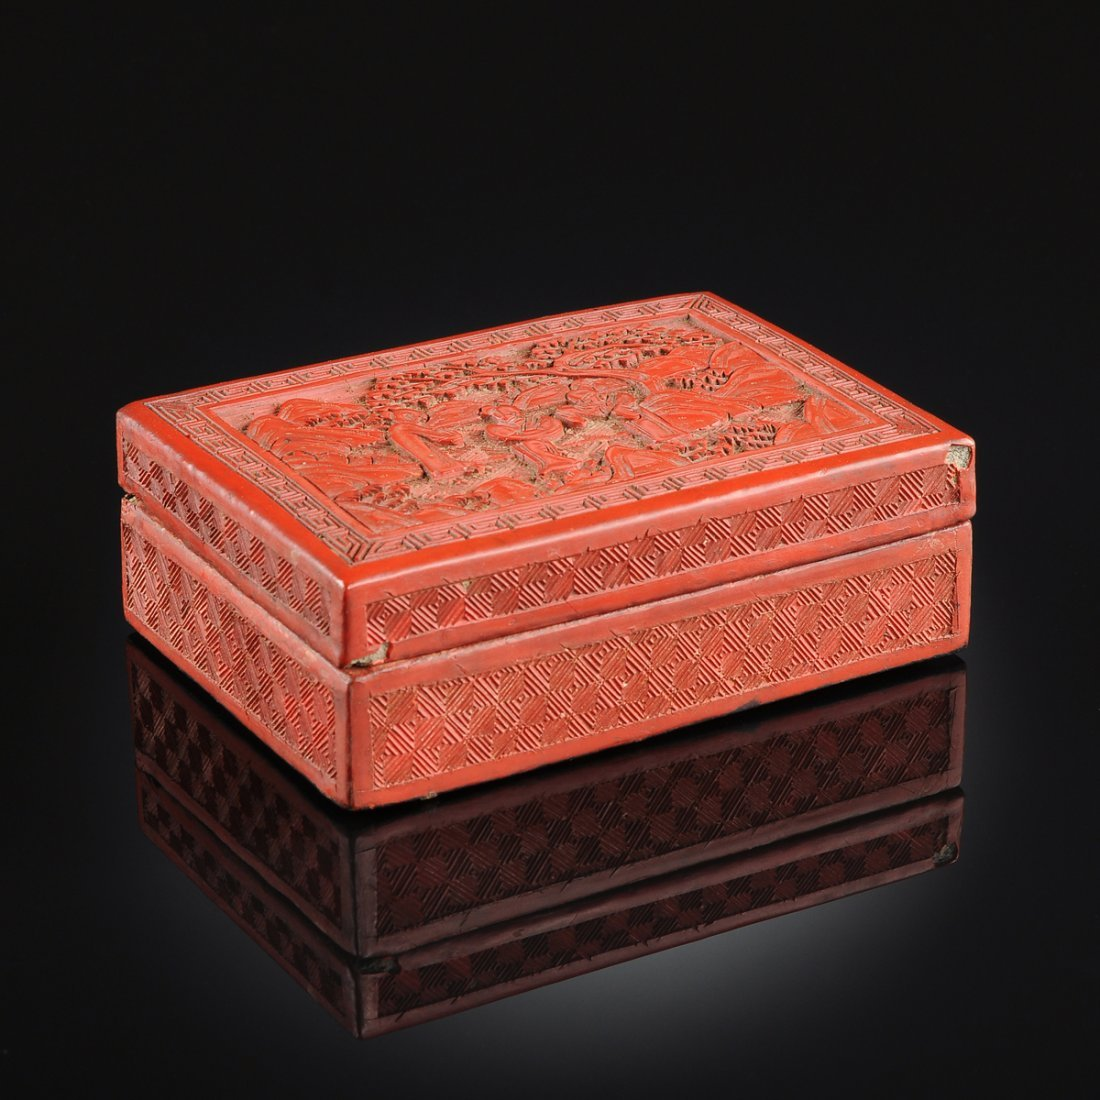 A CHINESE CINNABAR SQUARE LACQUER BOX AND COVER, 19TH